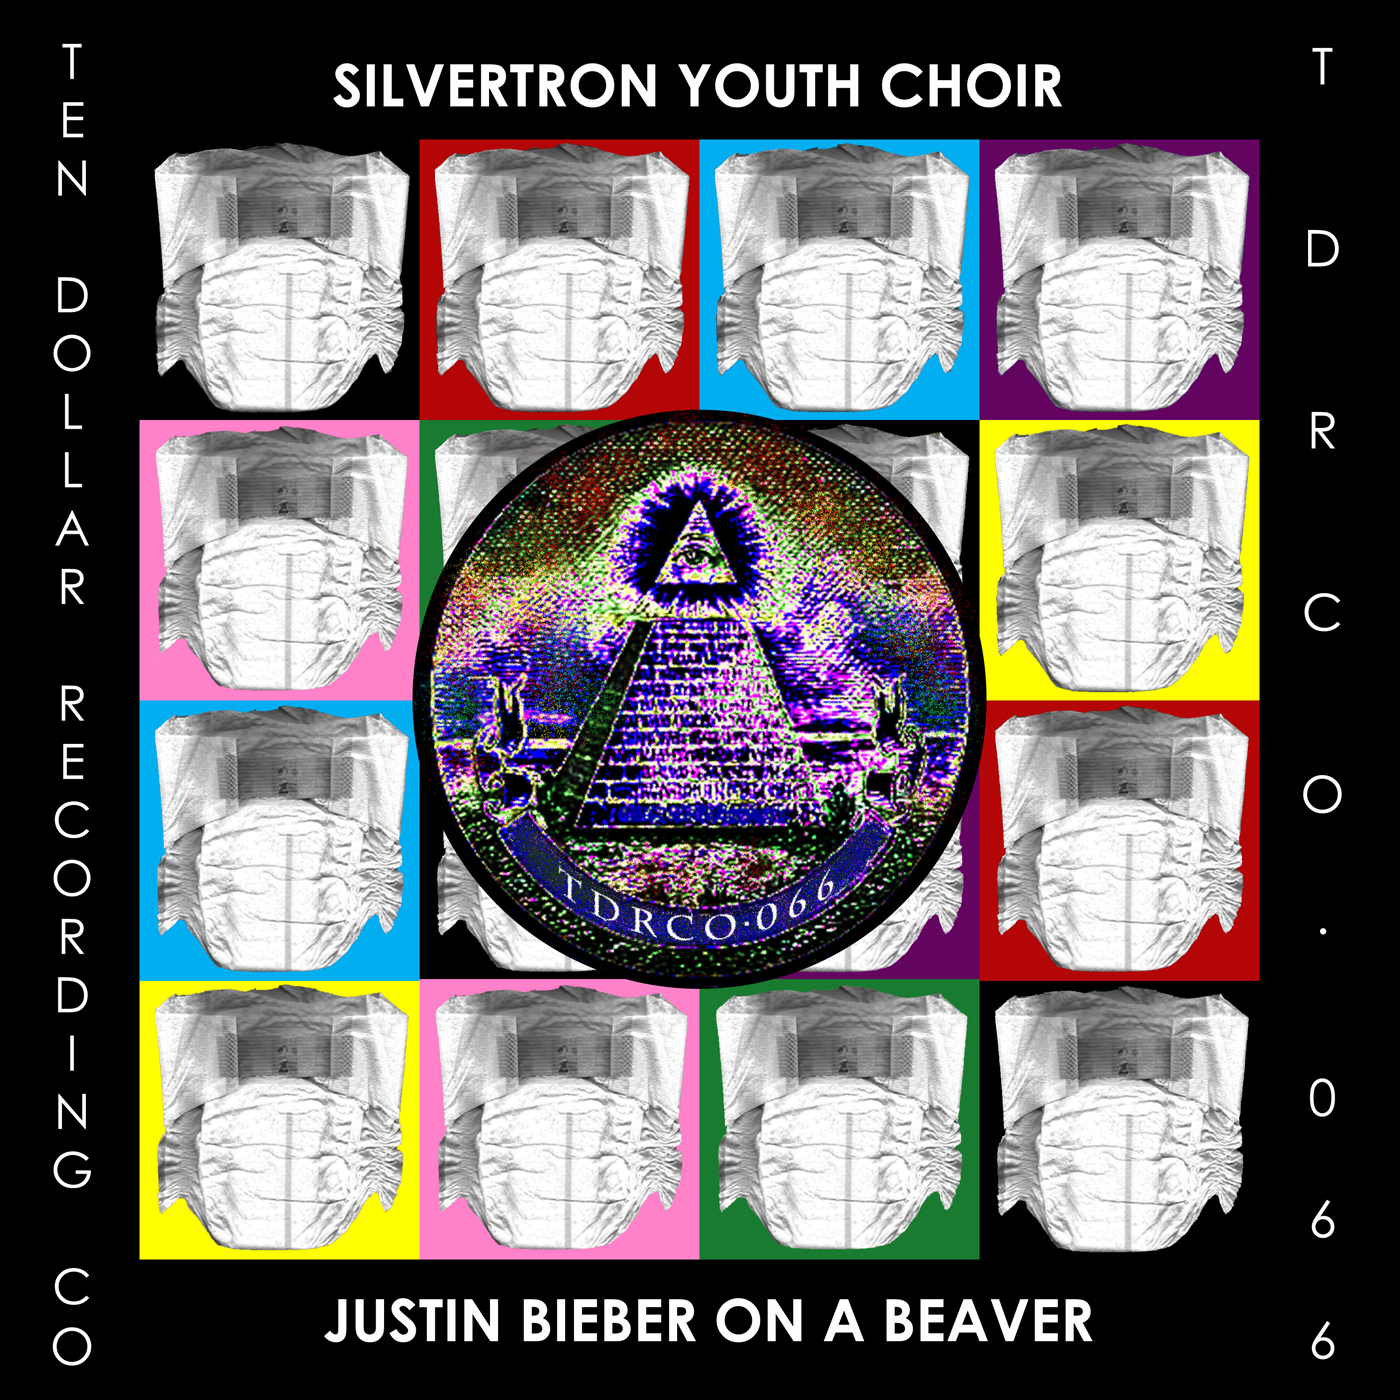 Silvertron Youth Choir - Justin Bieber On a Beaver (Single)